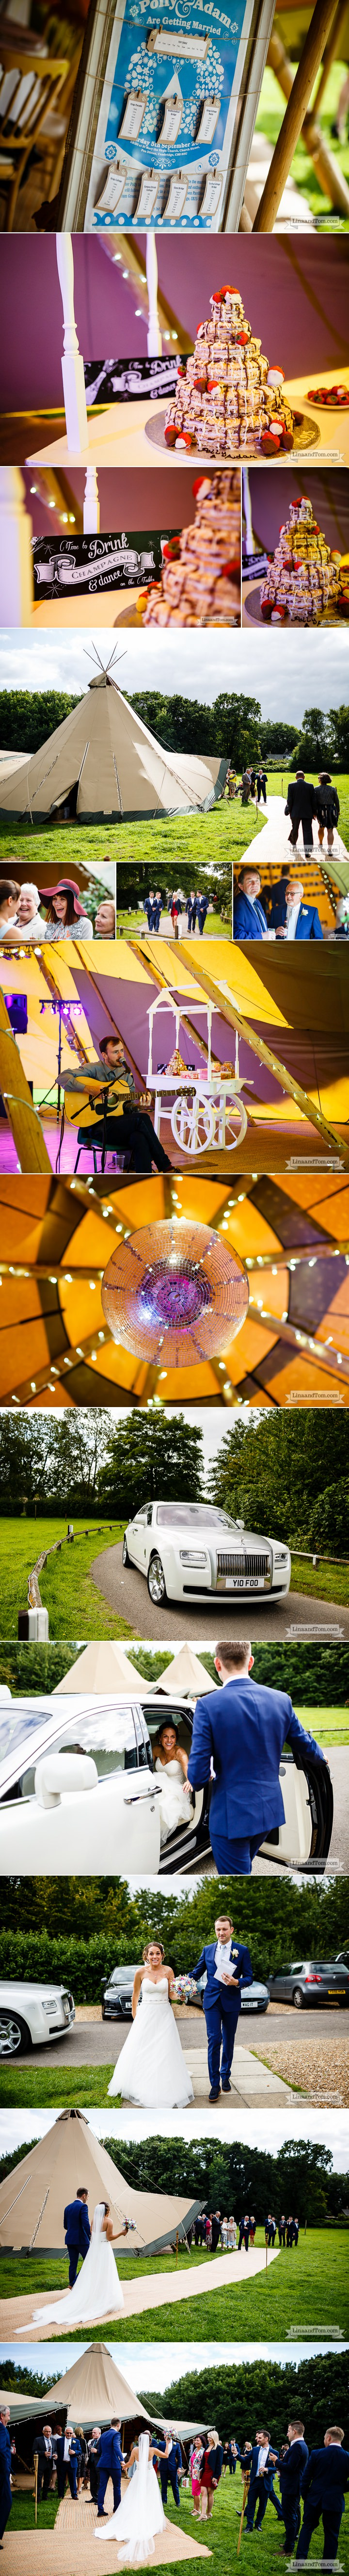 cambridge-summer-tipi-wedding-12